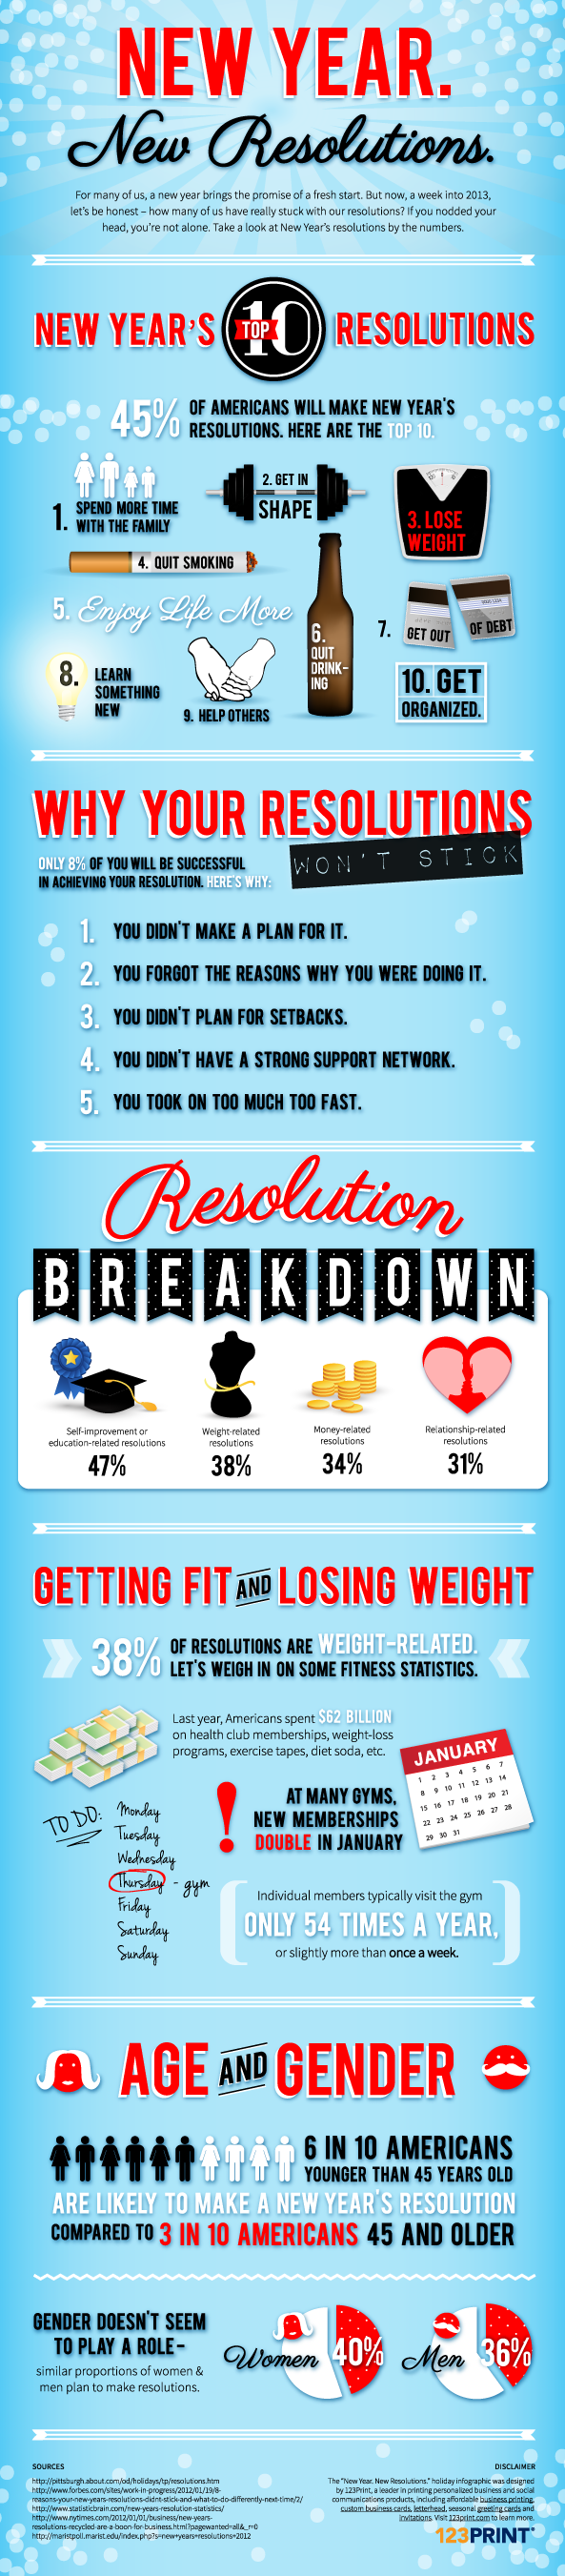 New Year's Resolutions 123print infographic